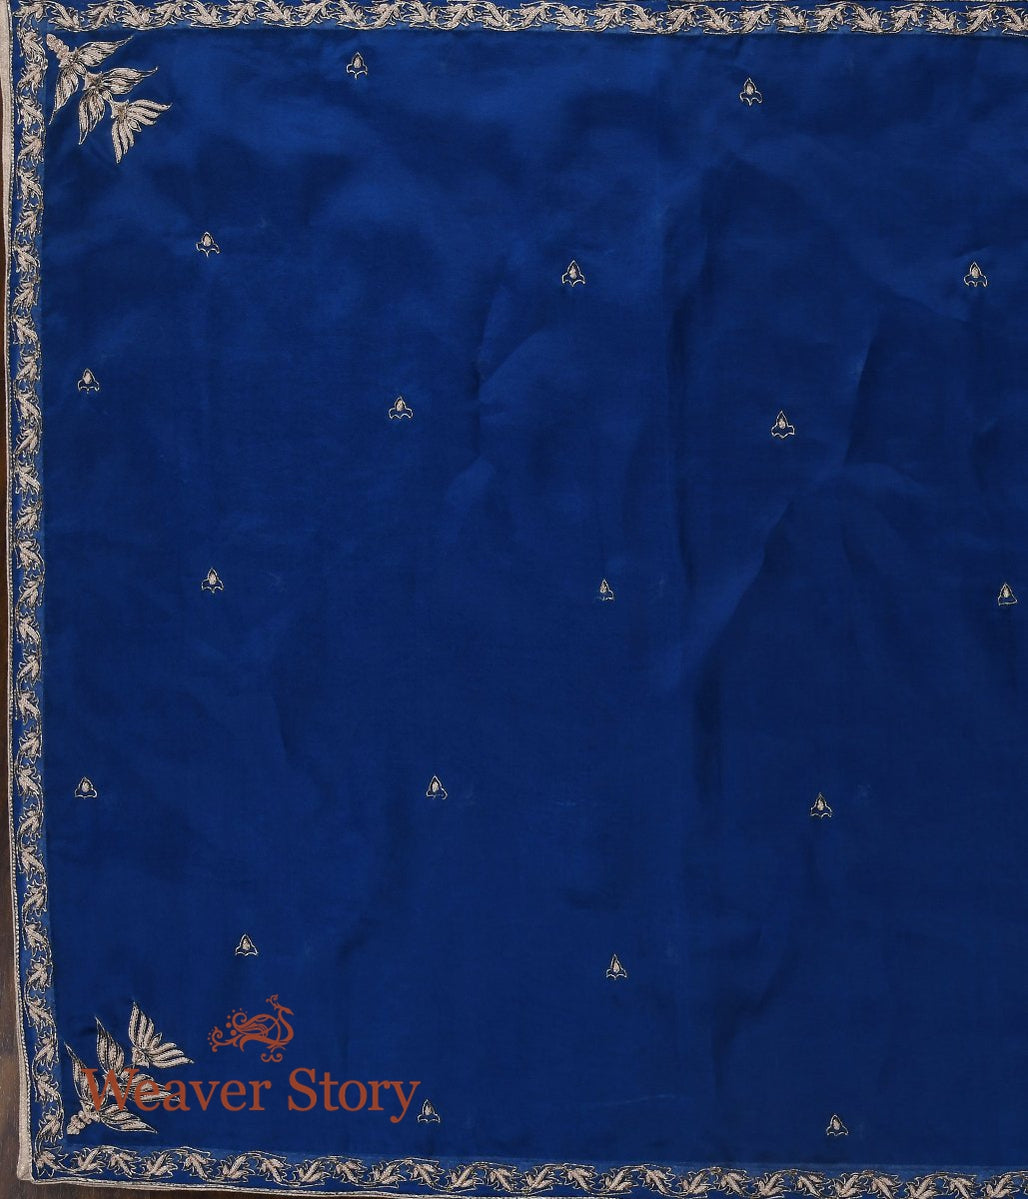 Blue Zardozi Dupatta with Leaf Border and Konia